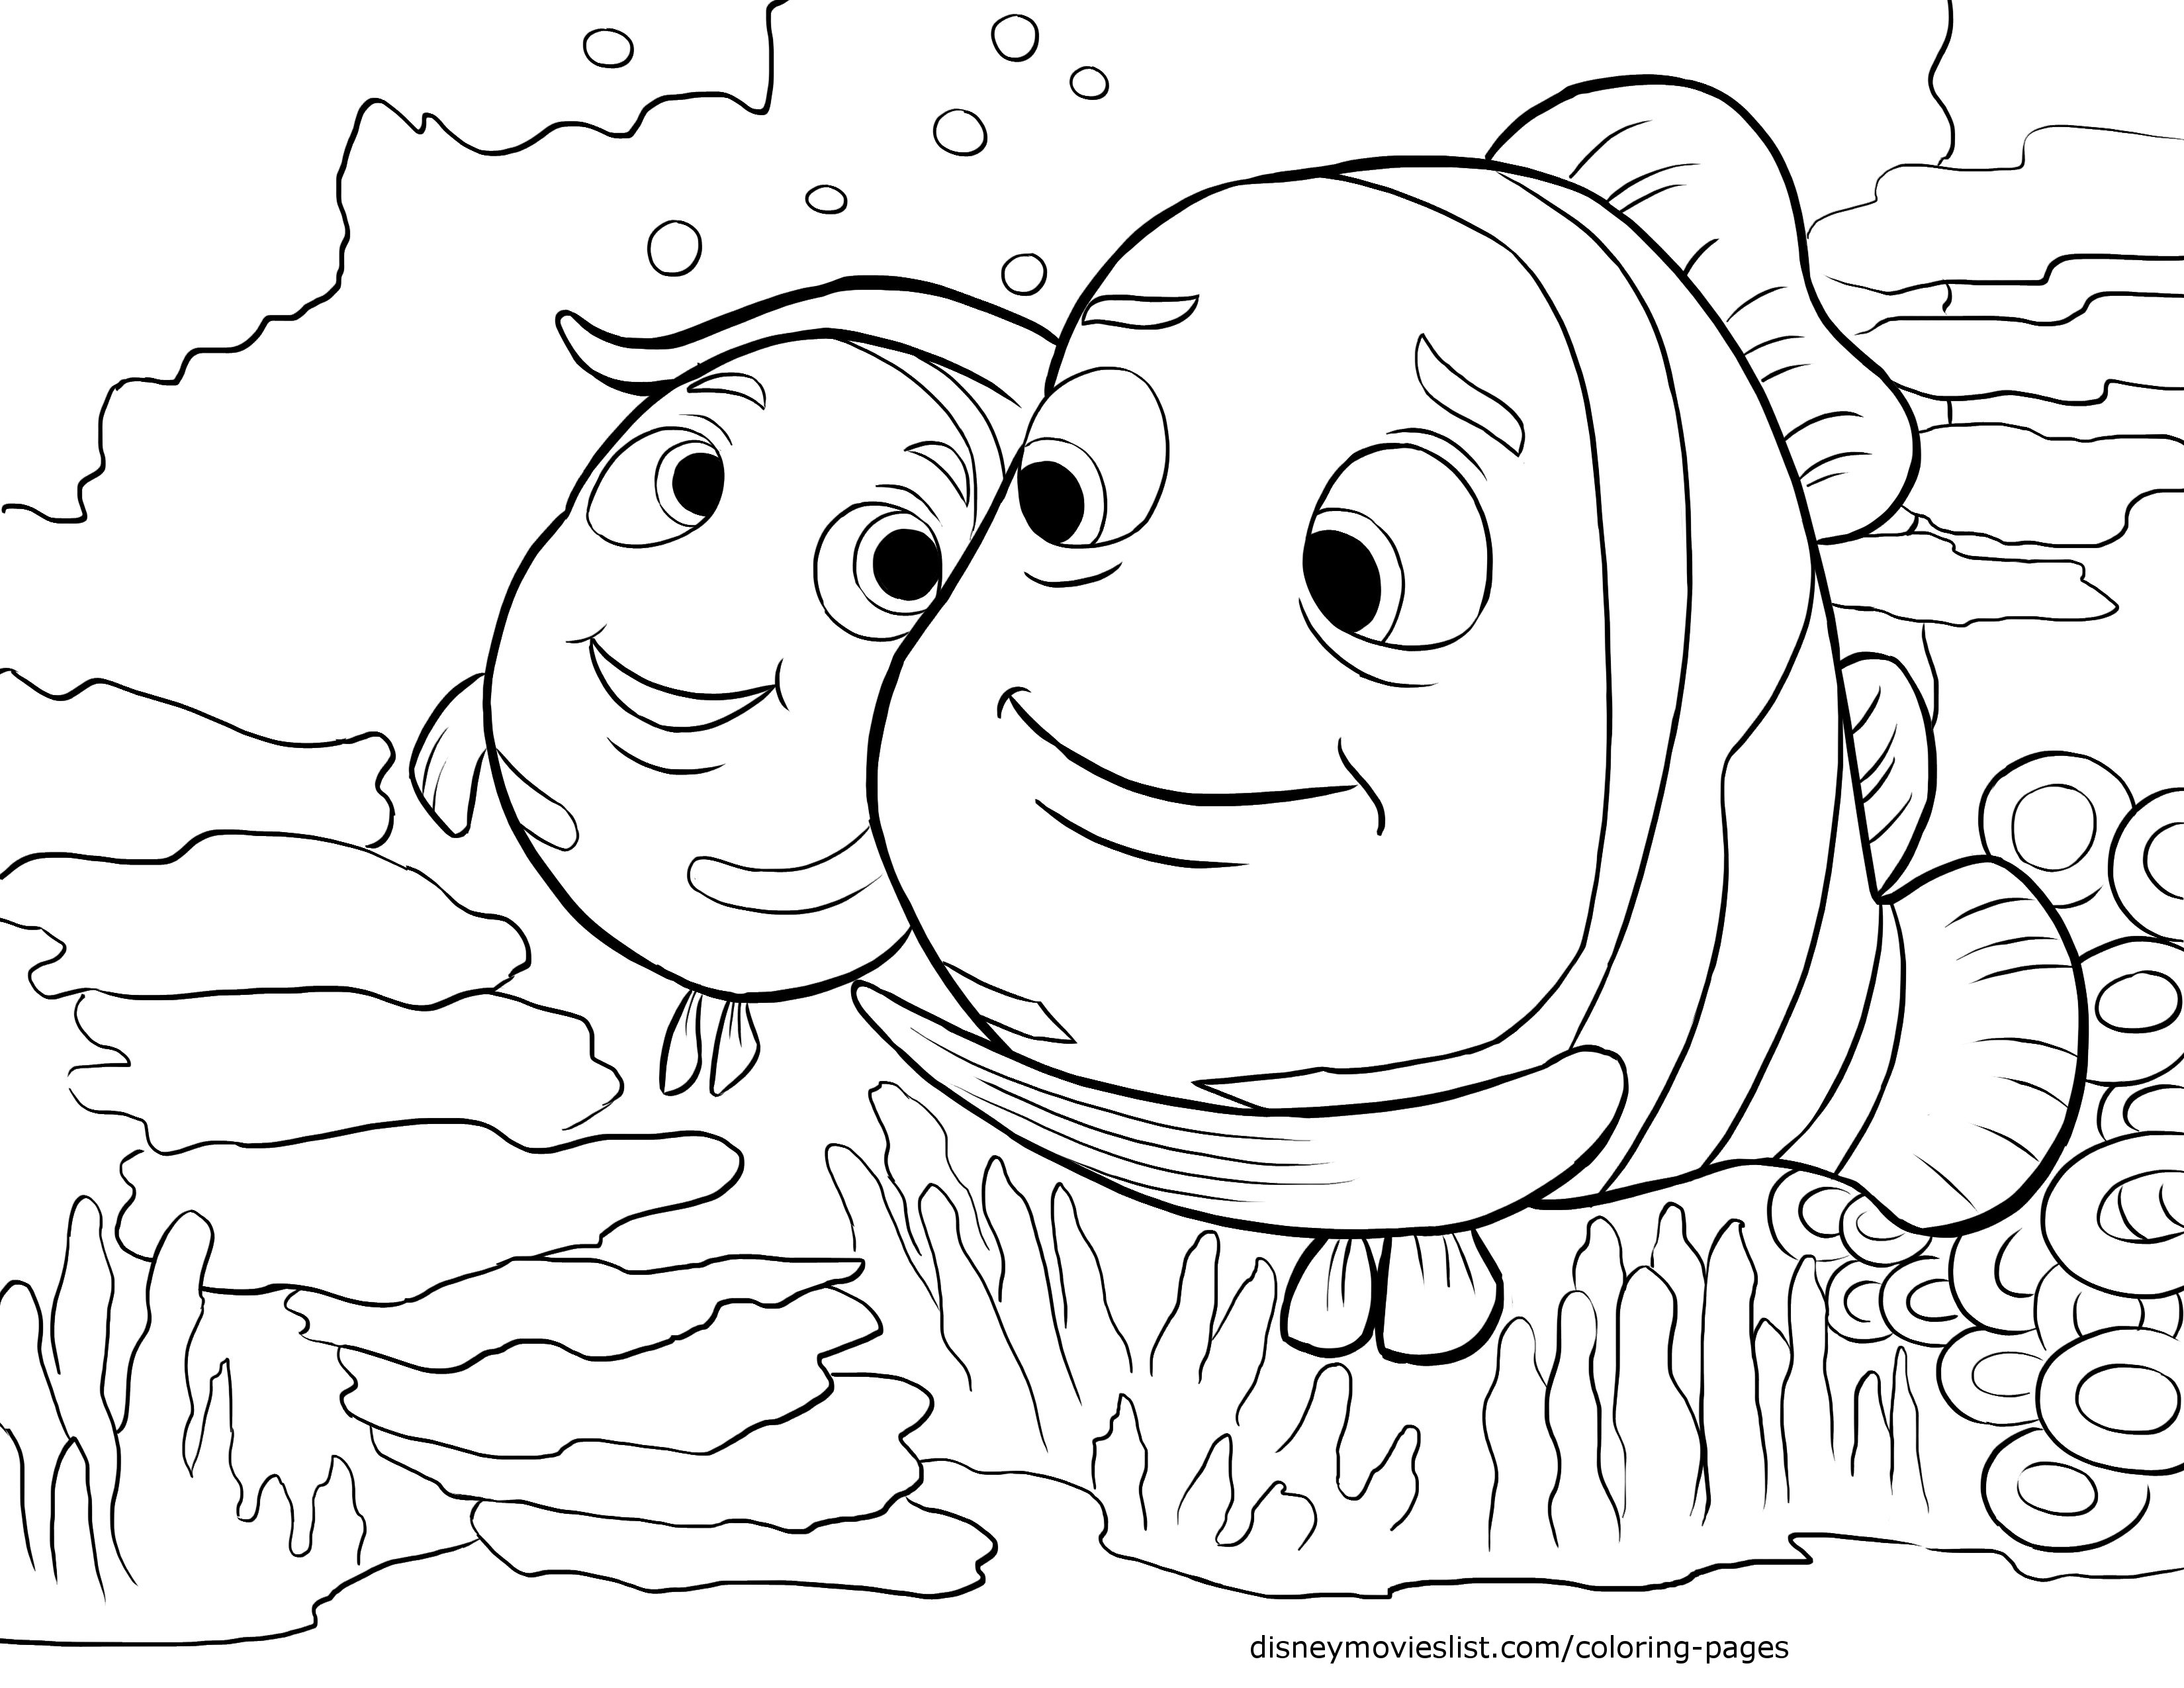 3300x2550 Best Of Finding Nemo Coloring Pages To And Print For Free Free